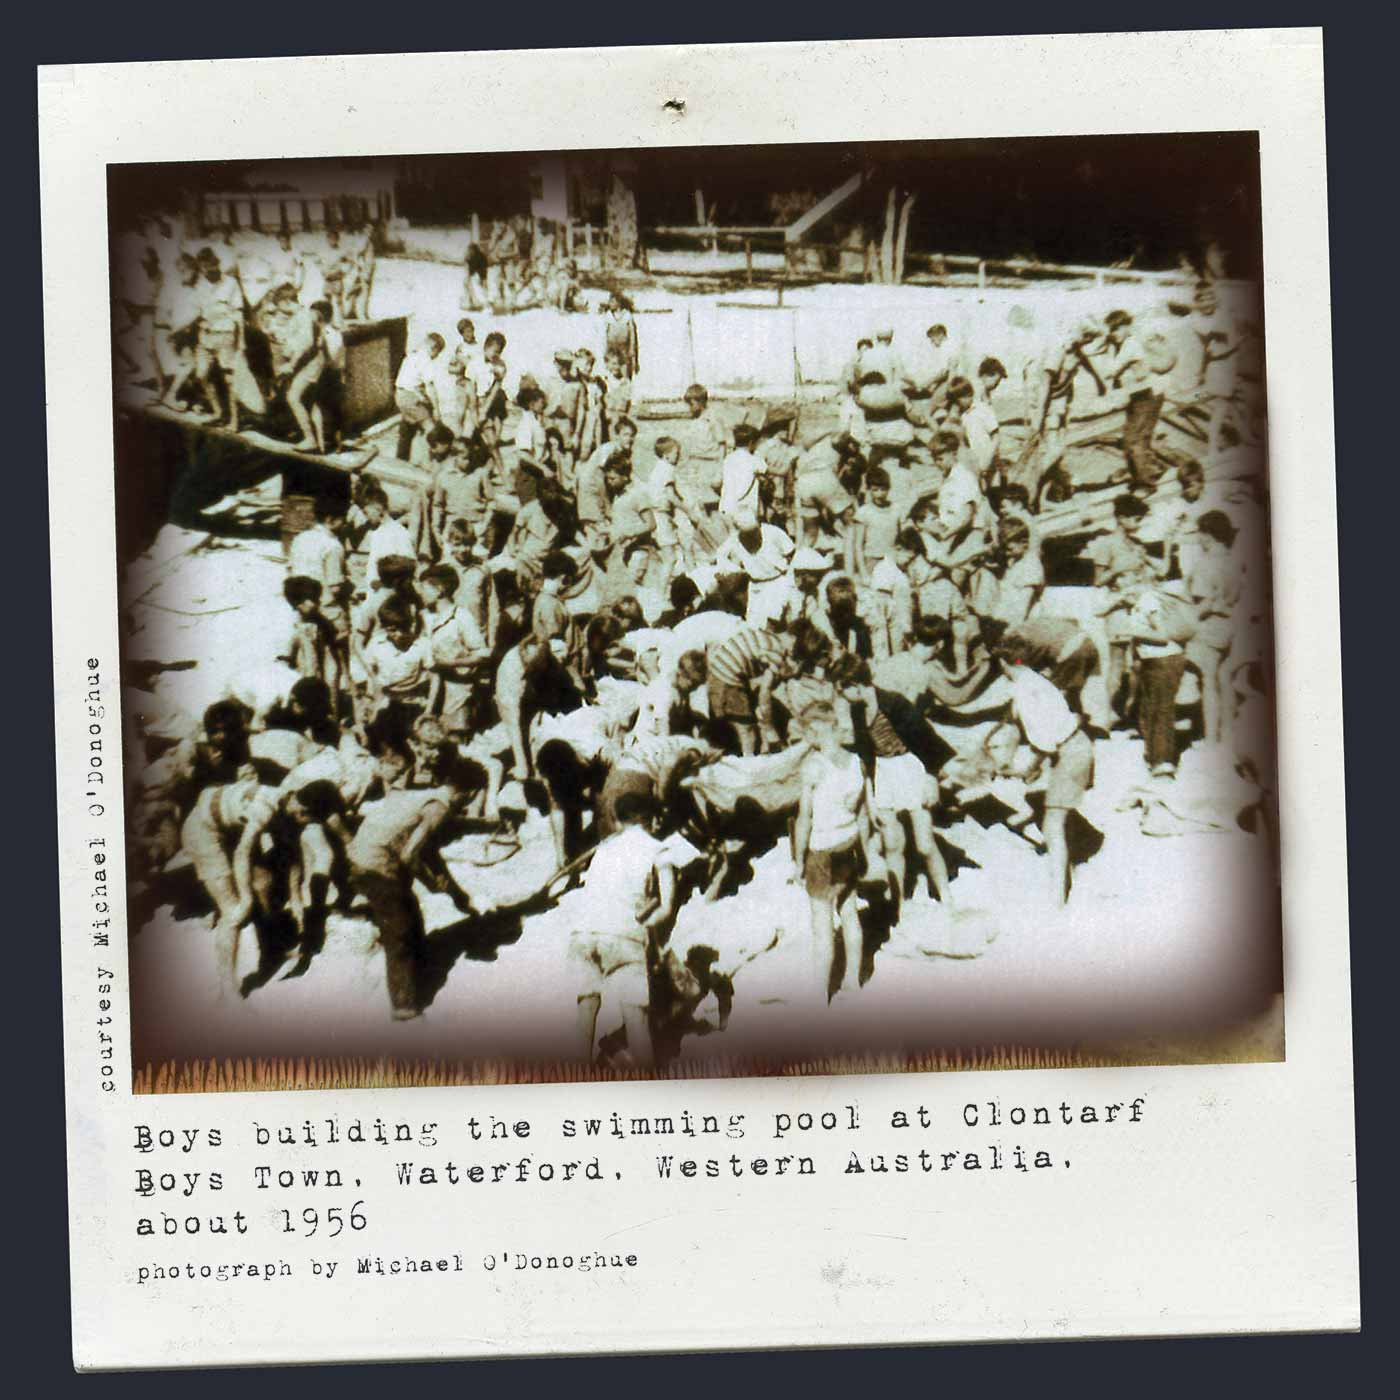 Polaroid photograph showing a large group of boys busy on a buliding site. Many dig in the foreground and others walk up a plank on the left. Typewritten text below reads 'Boys building the swimming pool at Clontarf Boys Town, Waterford, Western Australia, about 1956. Photograph by Michael O'Donoghue'. - click to view larger image